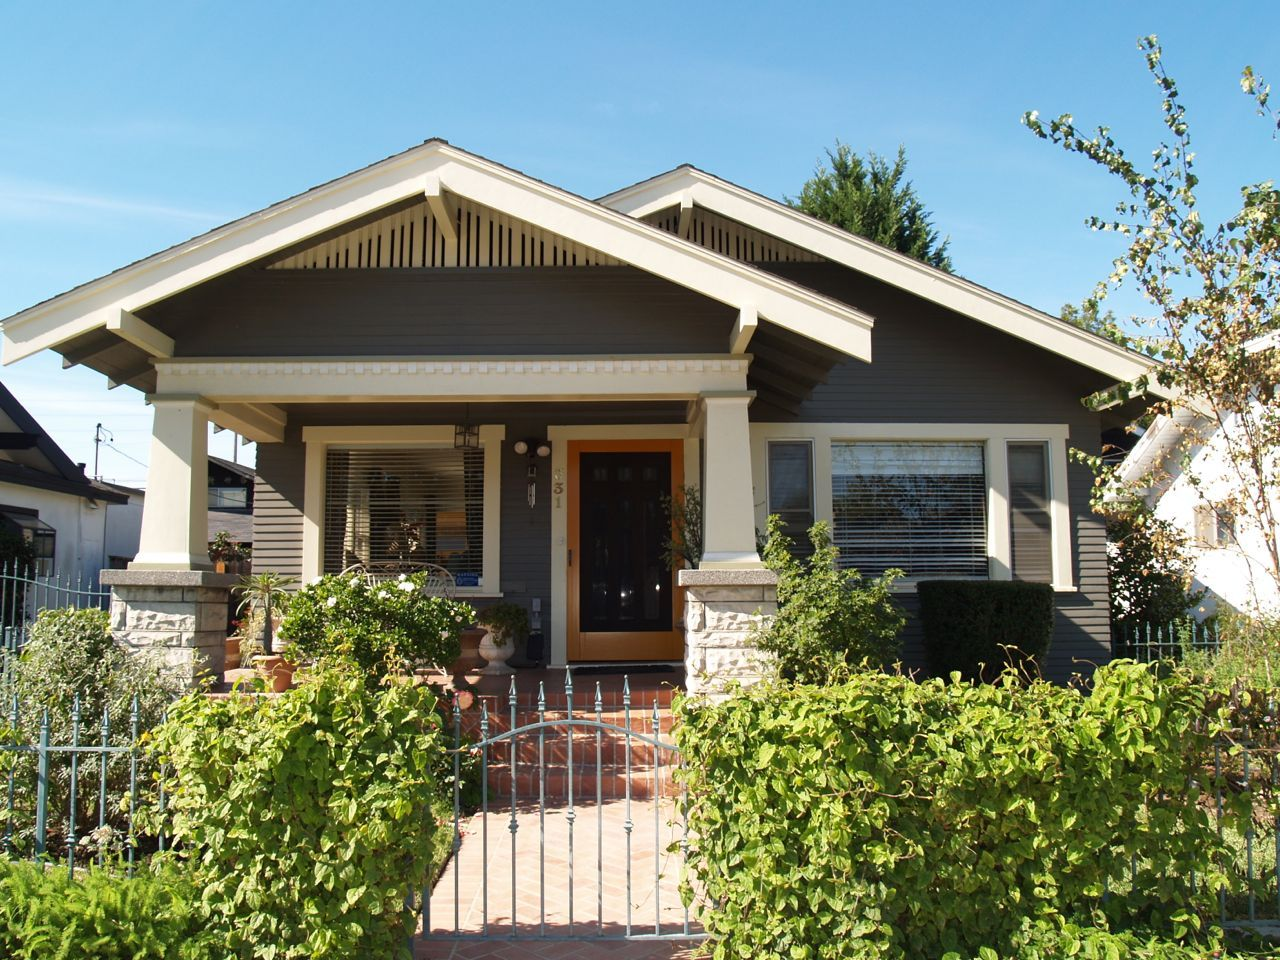 California bungalow belmont heights long beach ca for California bungalow house